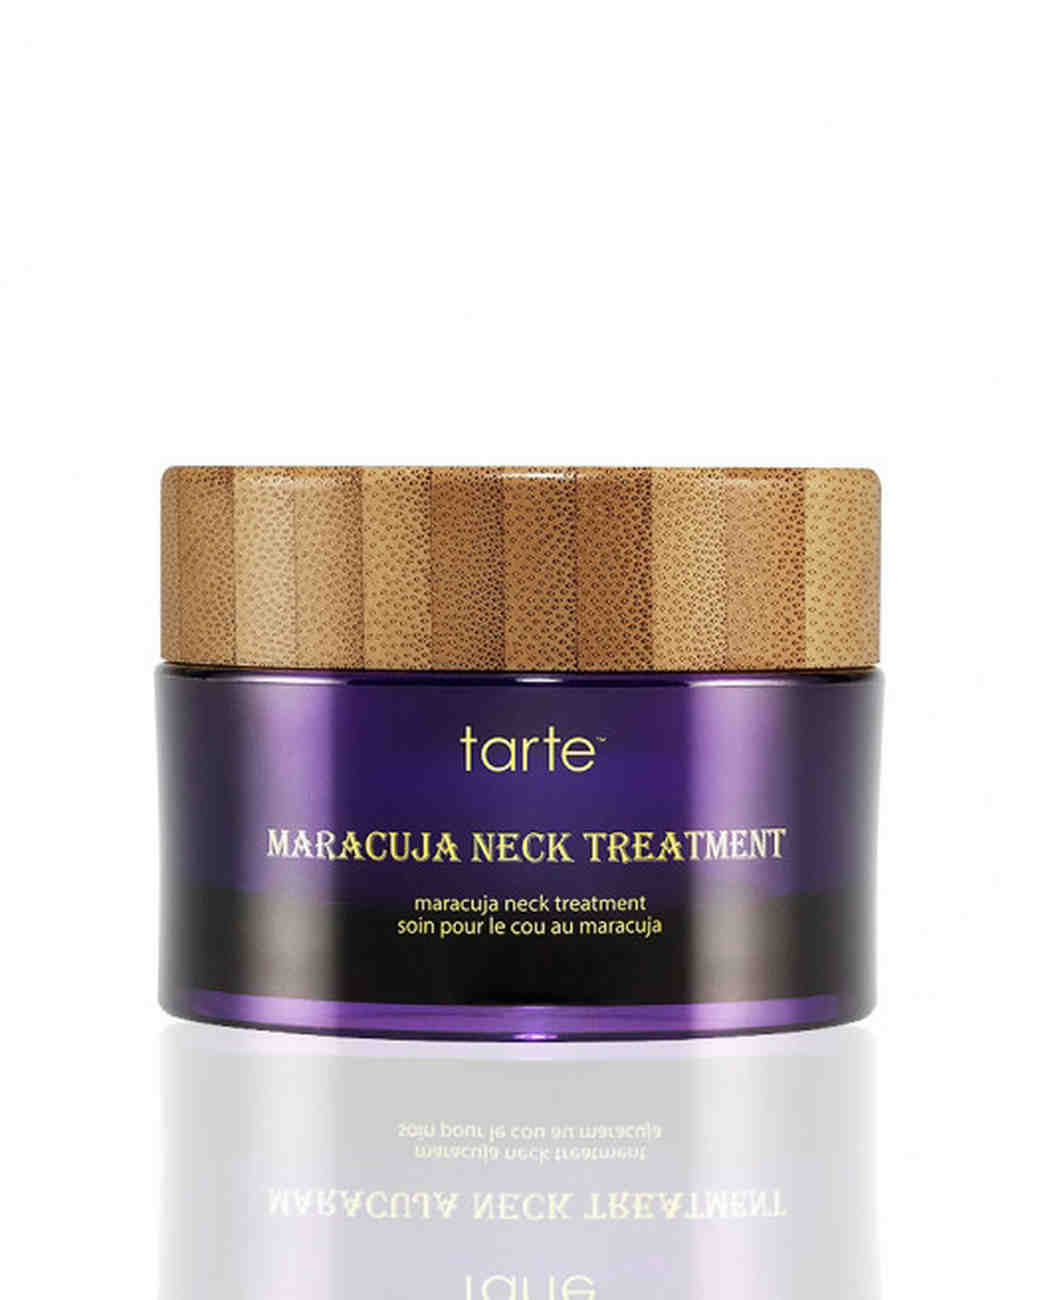 tarte decolletage product